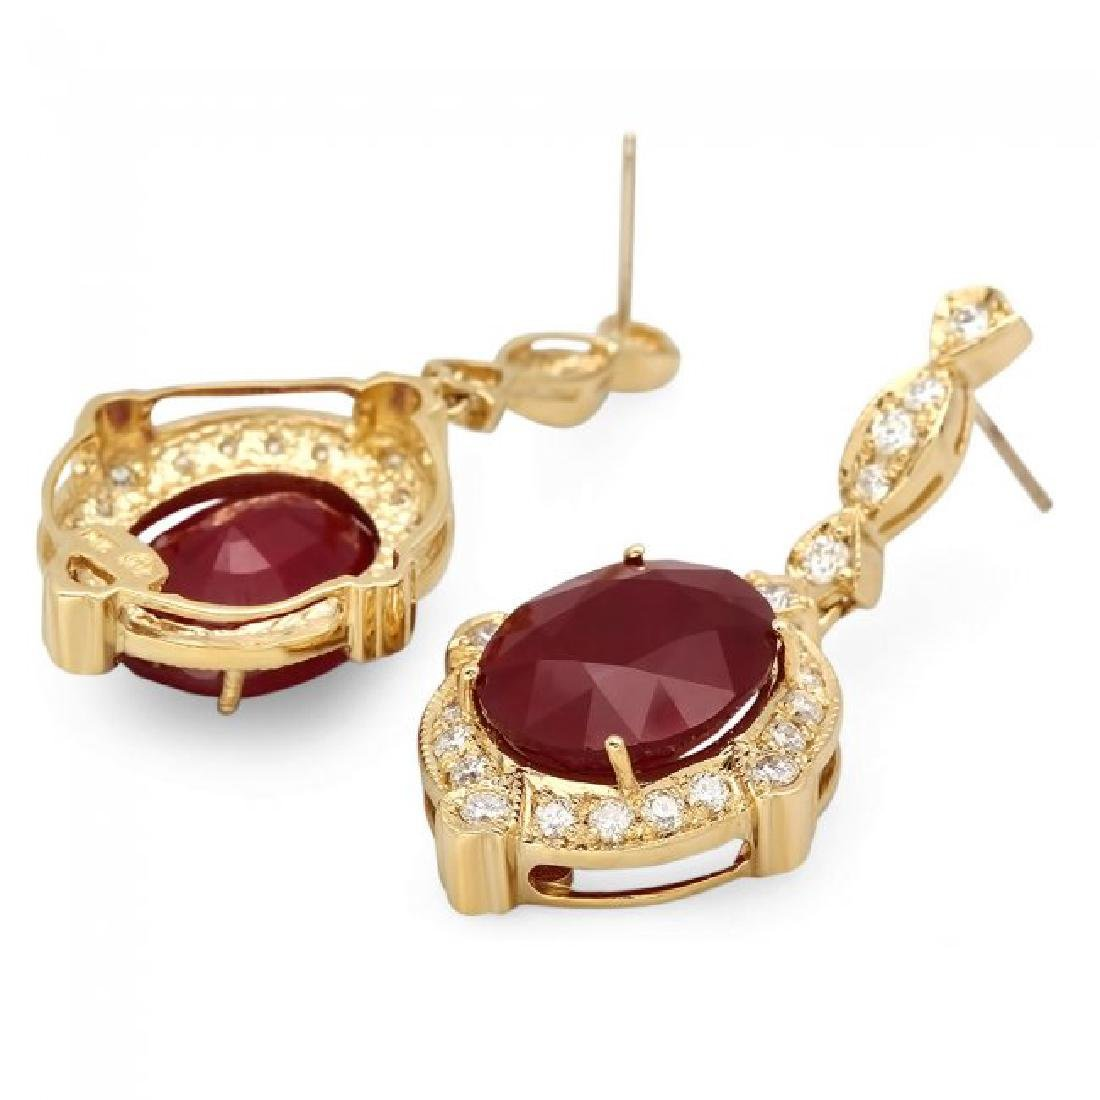 14k Gold 22.50ct Ruby 1.70ct Diamond Earrings - 2